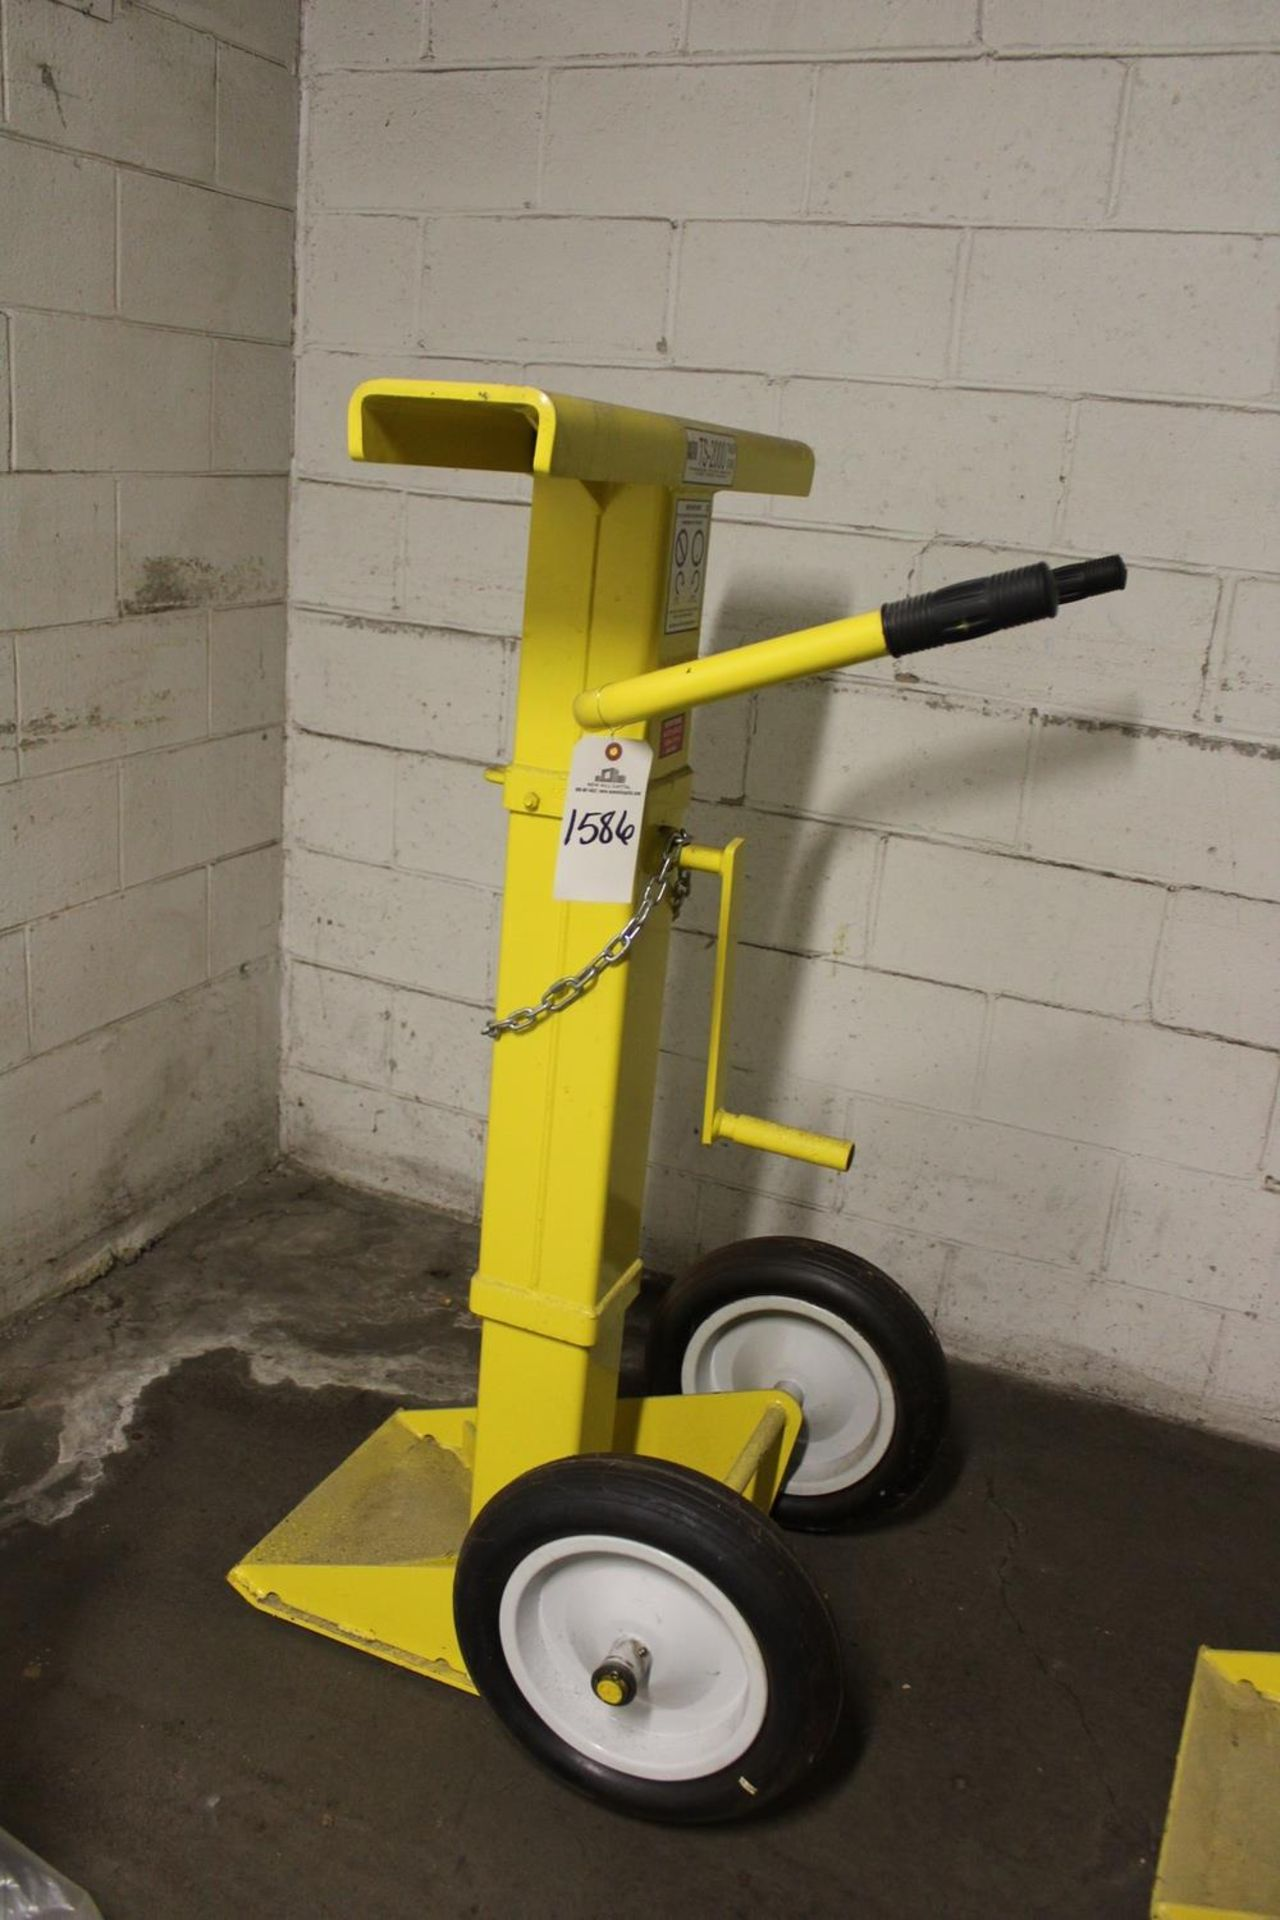 Lot 1586 - Rite Hite TS-2000 Trailer Stand - Subject to Bulk Bid Lot 15 | Rig Fee: Hand Carry or Contact Rigger